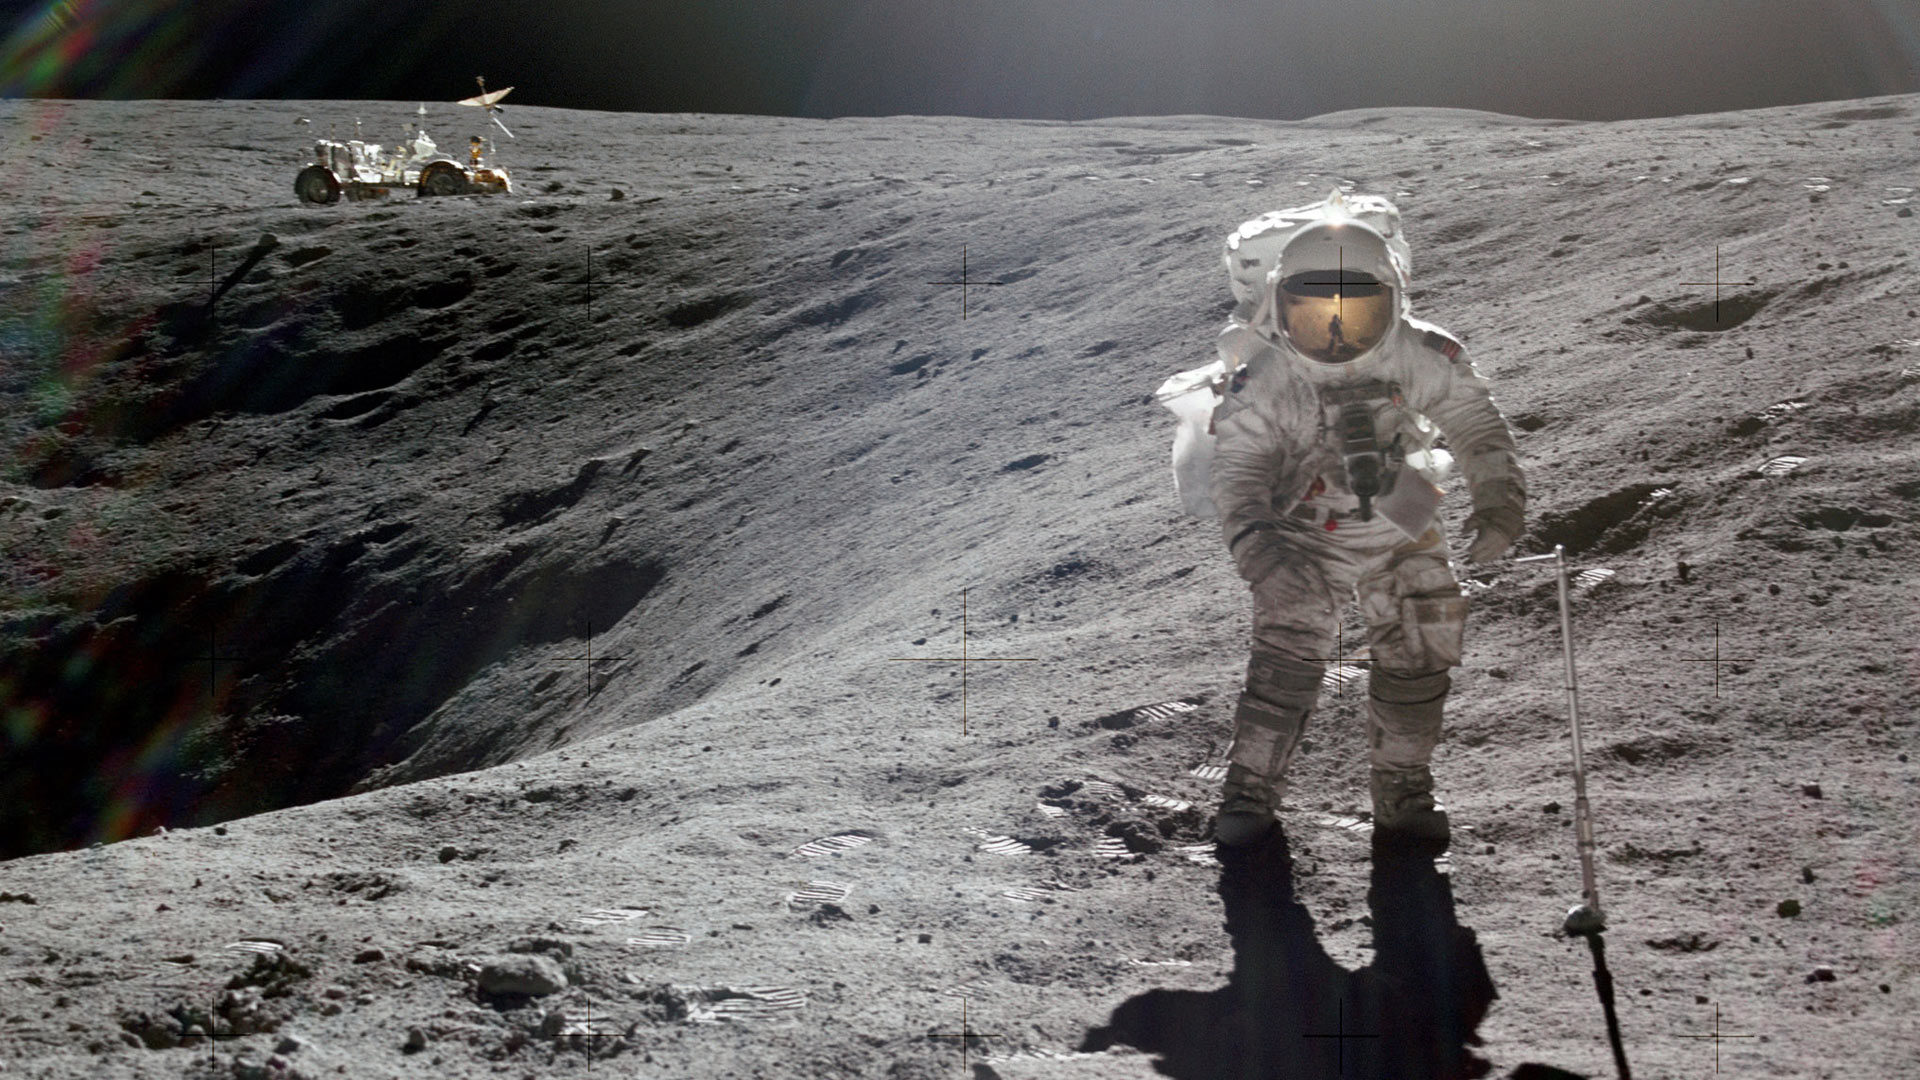 Astronaut Charles M. Duke Jr., lunar module pilot of the Apollo 16 lunar landing mission, is photographed collecting lunar samples at Station no. 1 during the first Apollo 16 extravehicular activity at the Descartes landing site. This picture, looking eastward, was taken by Astronaut John W. Young, commander. Duke is standing at the rim of Plum crater, which is 40 meters in diameter and 10 meters deep. The parked Lunar Roving Vehicle can be seen in the left background.